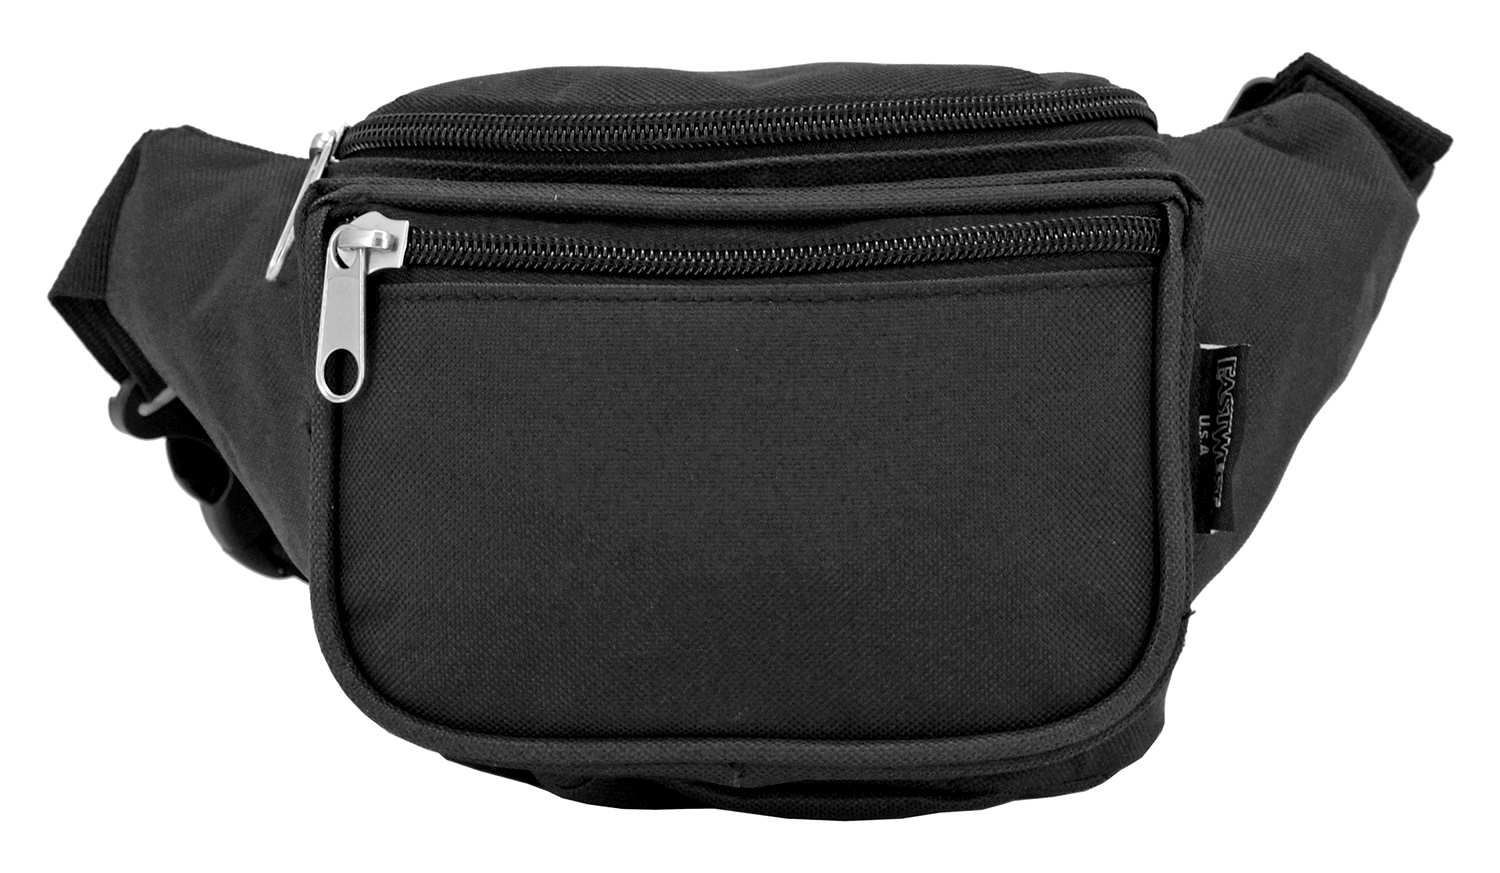 Medium Daily Fanny Pack with Pouch - Black